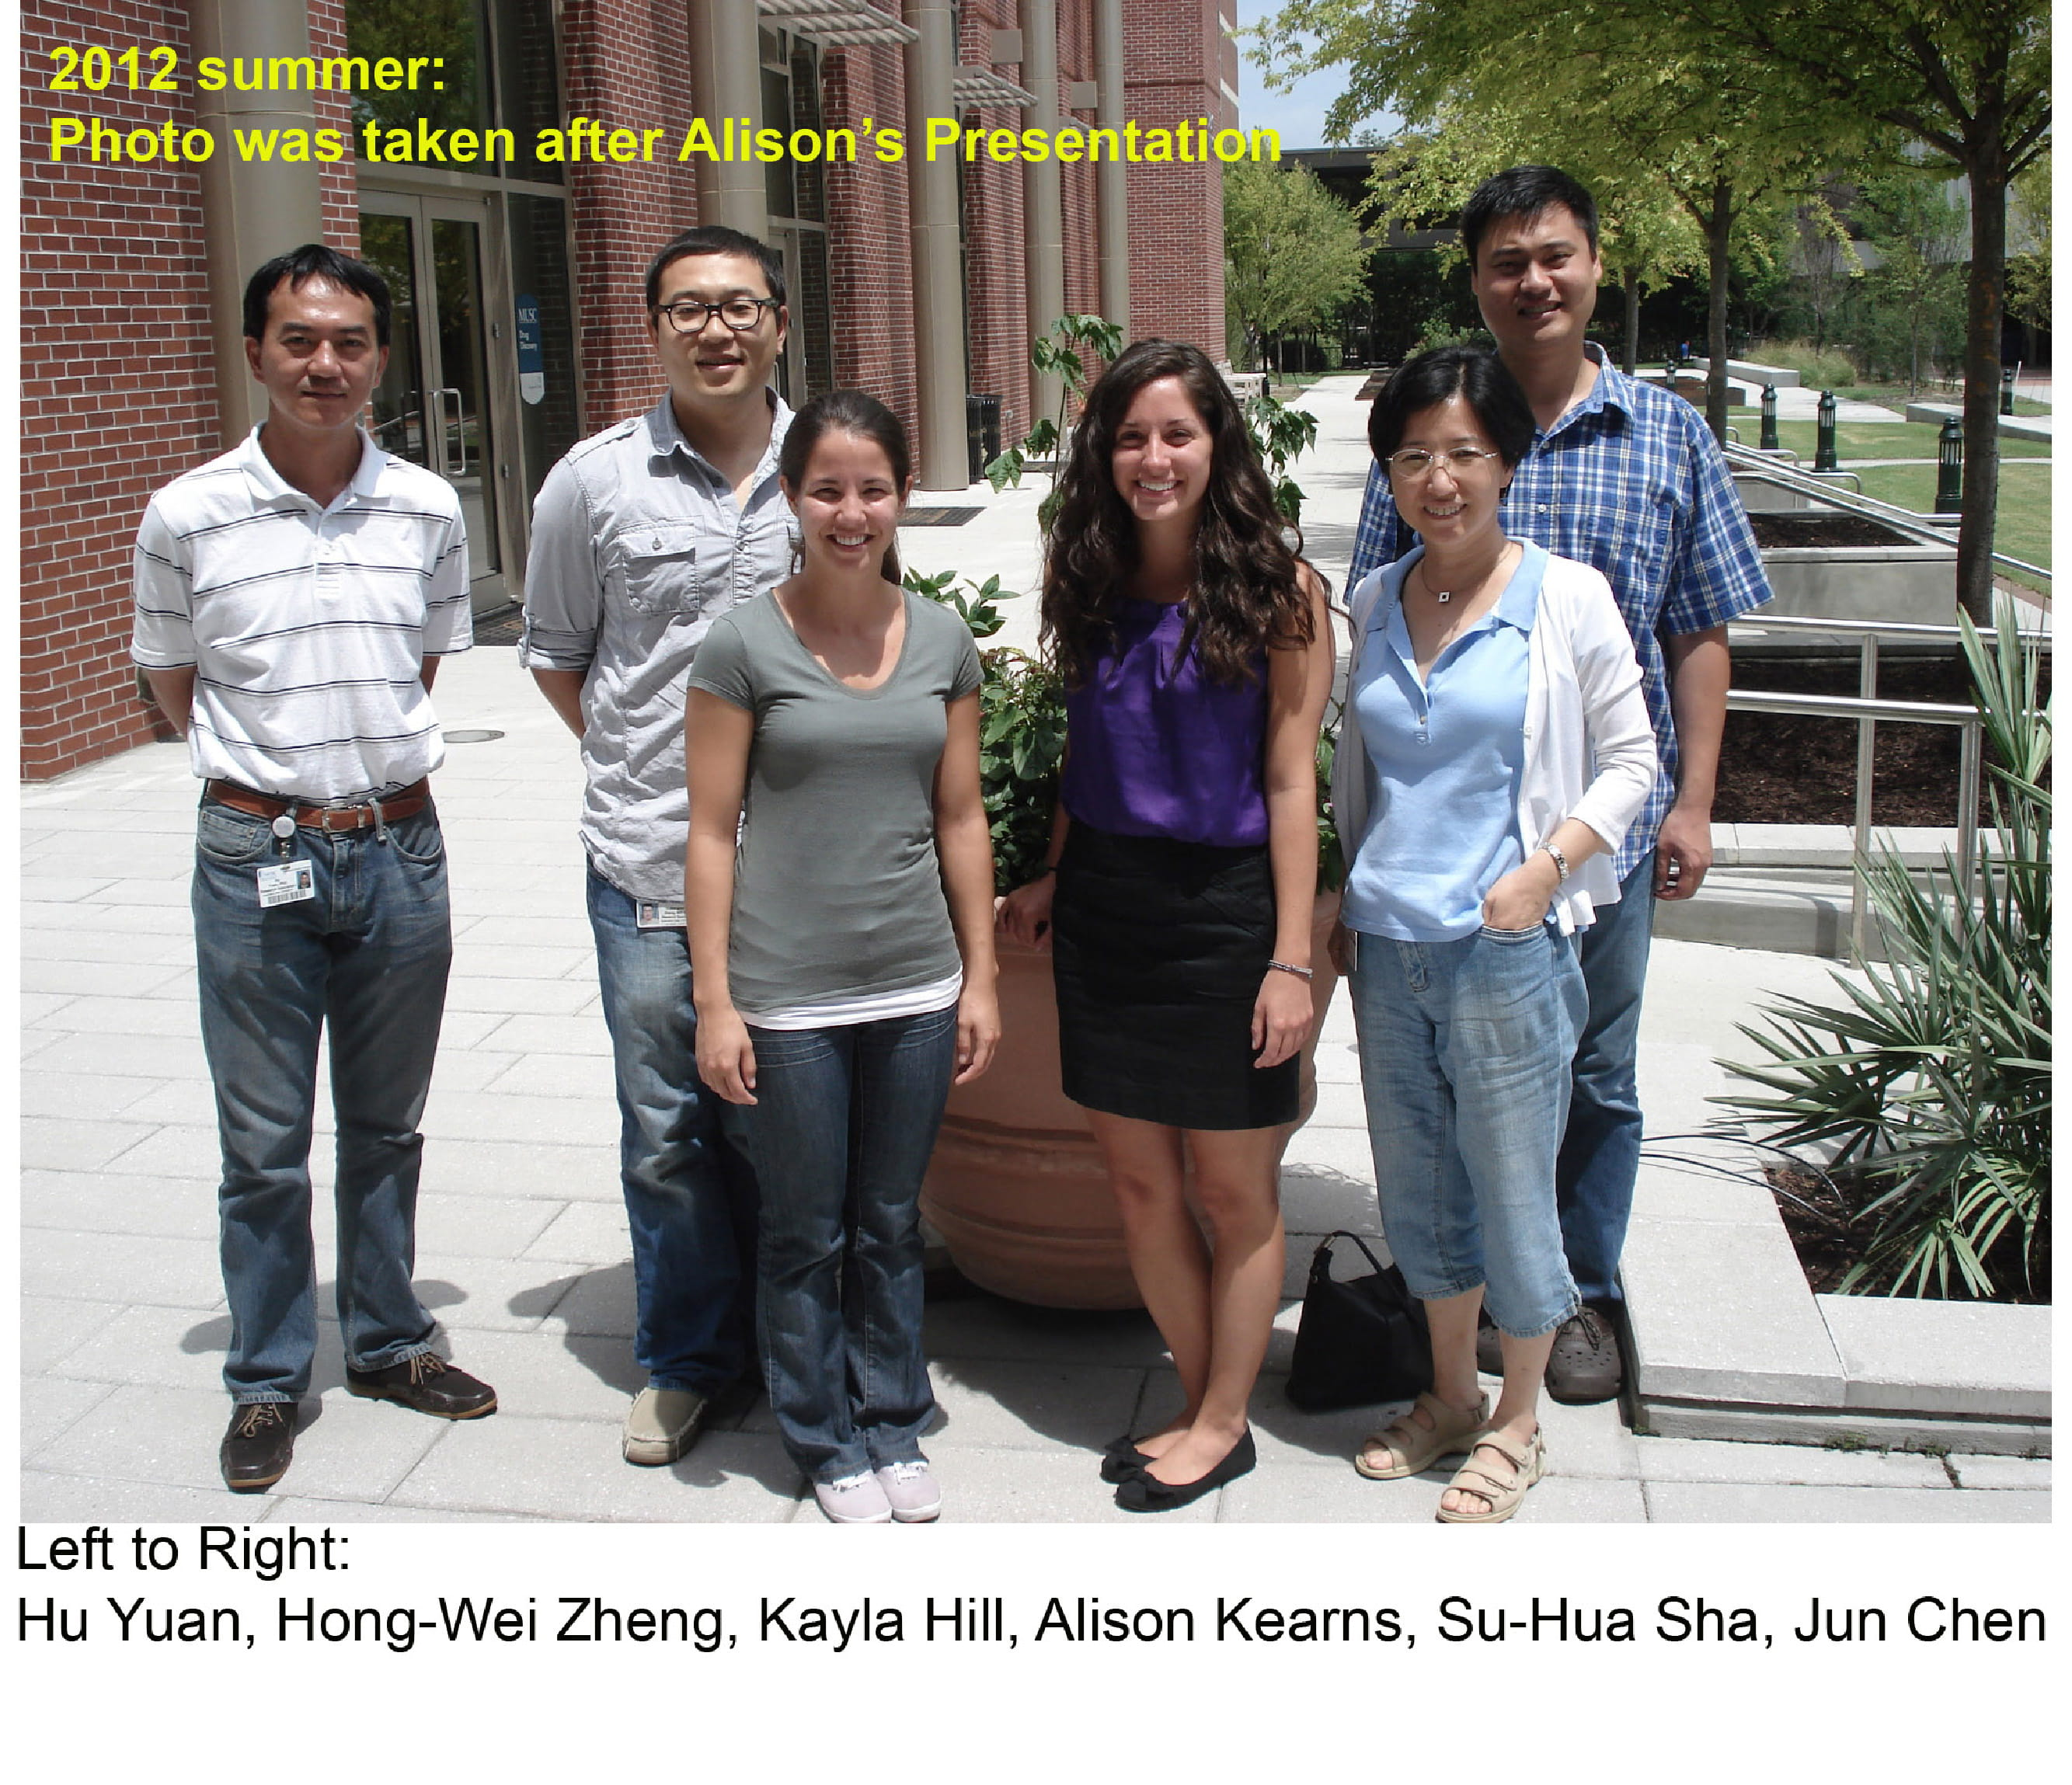 Left to Right: Hu Yuan, Hong-Wei Zheng, Kayla Hill, Alison Kearns, Su-Hua Sha, Jun Chen